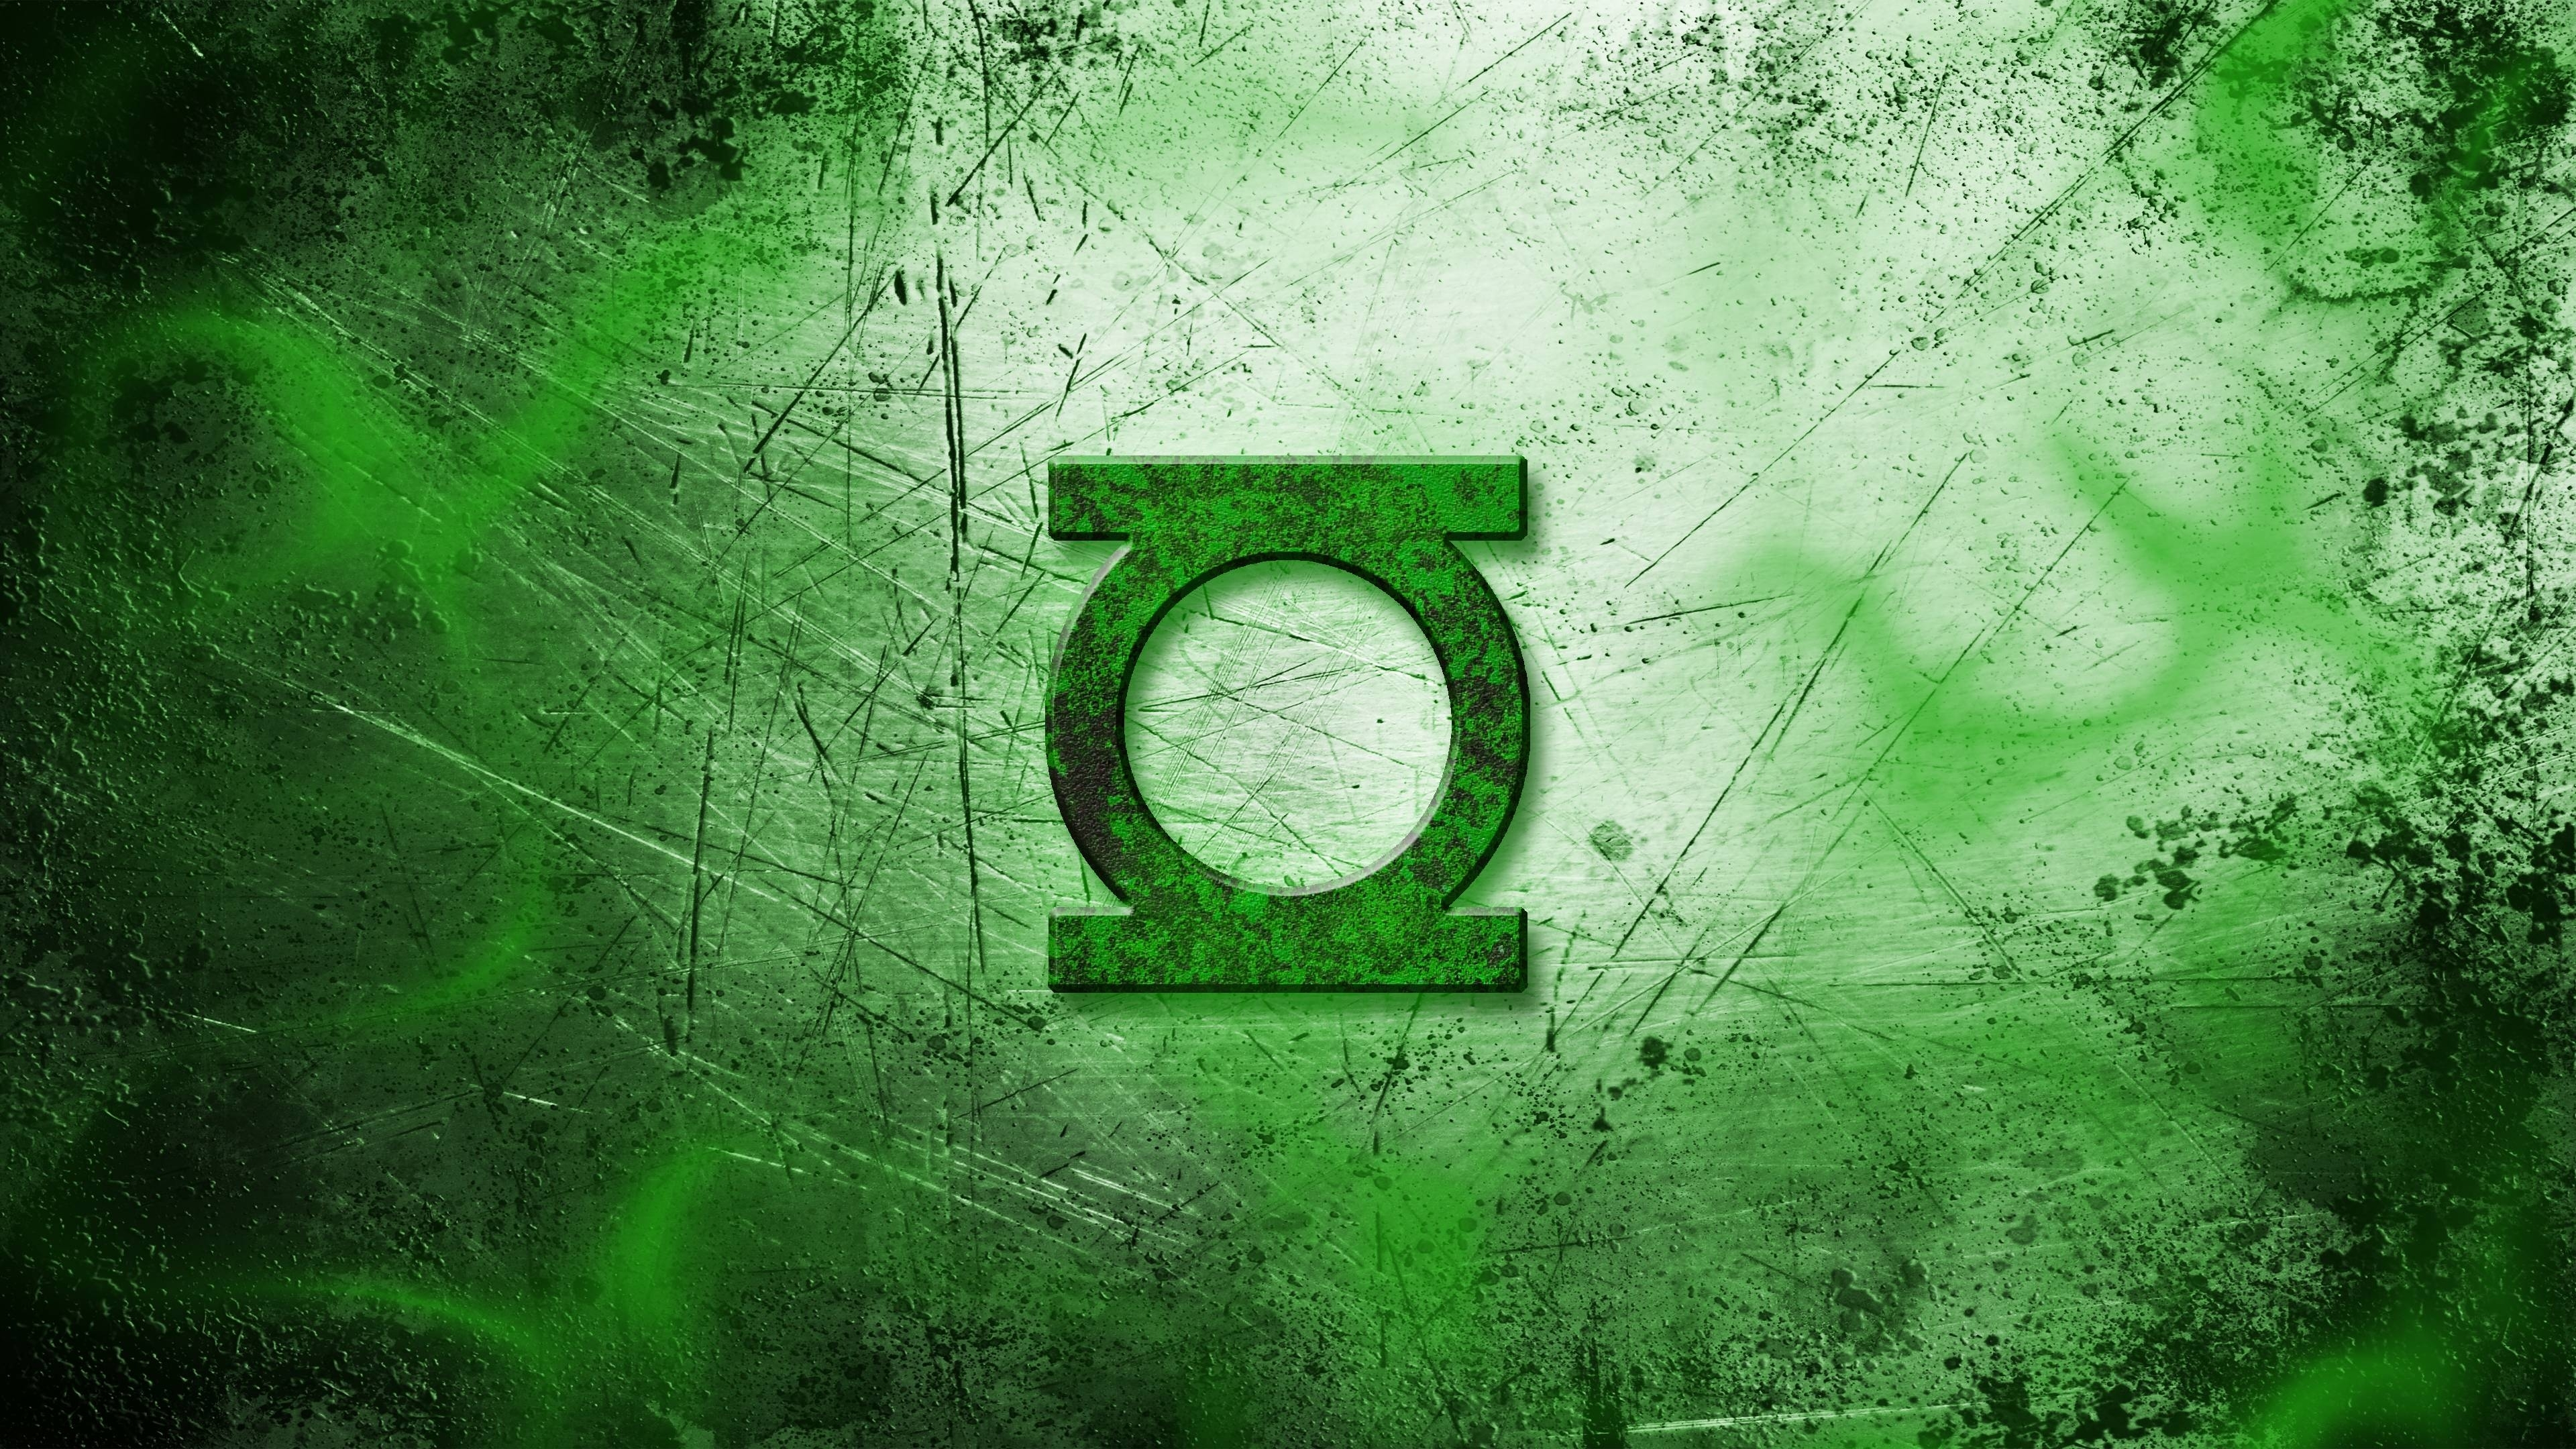 268 green lantern hd wallpapers   background images - wallpaper abyss